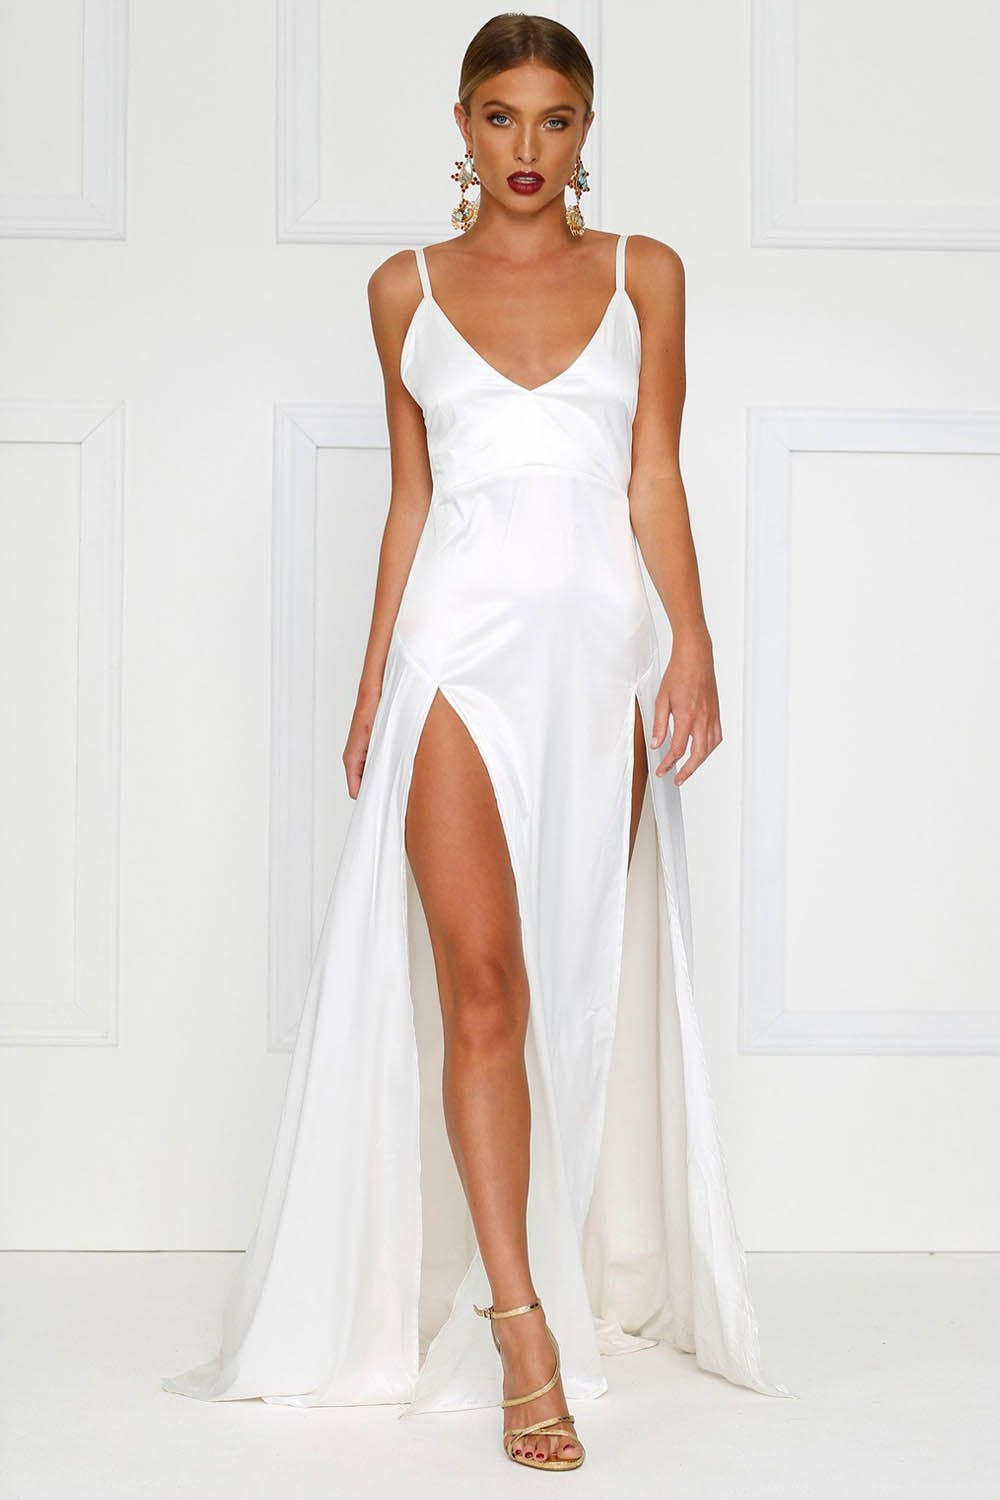 f233c1afed6 White Sexy Long Satin Prom Dress with Two Flirty Side Thigh-High Splits